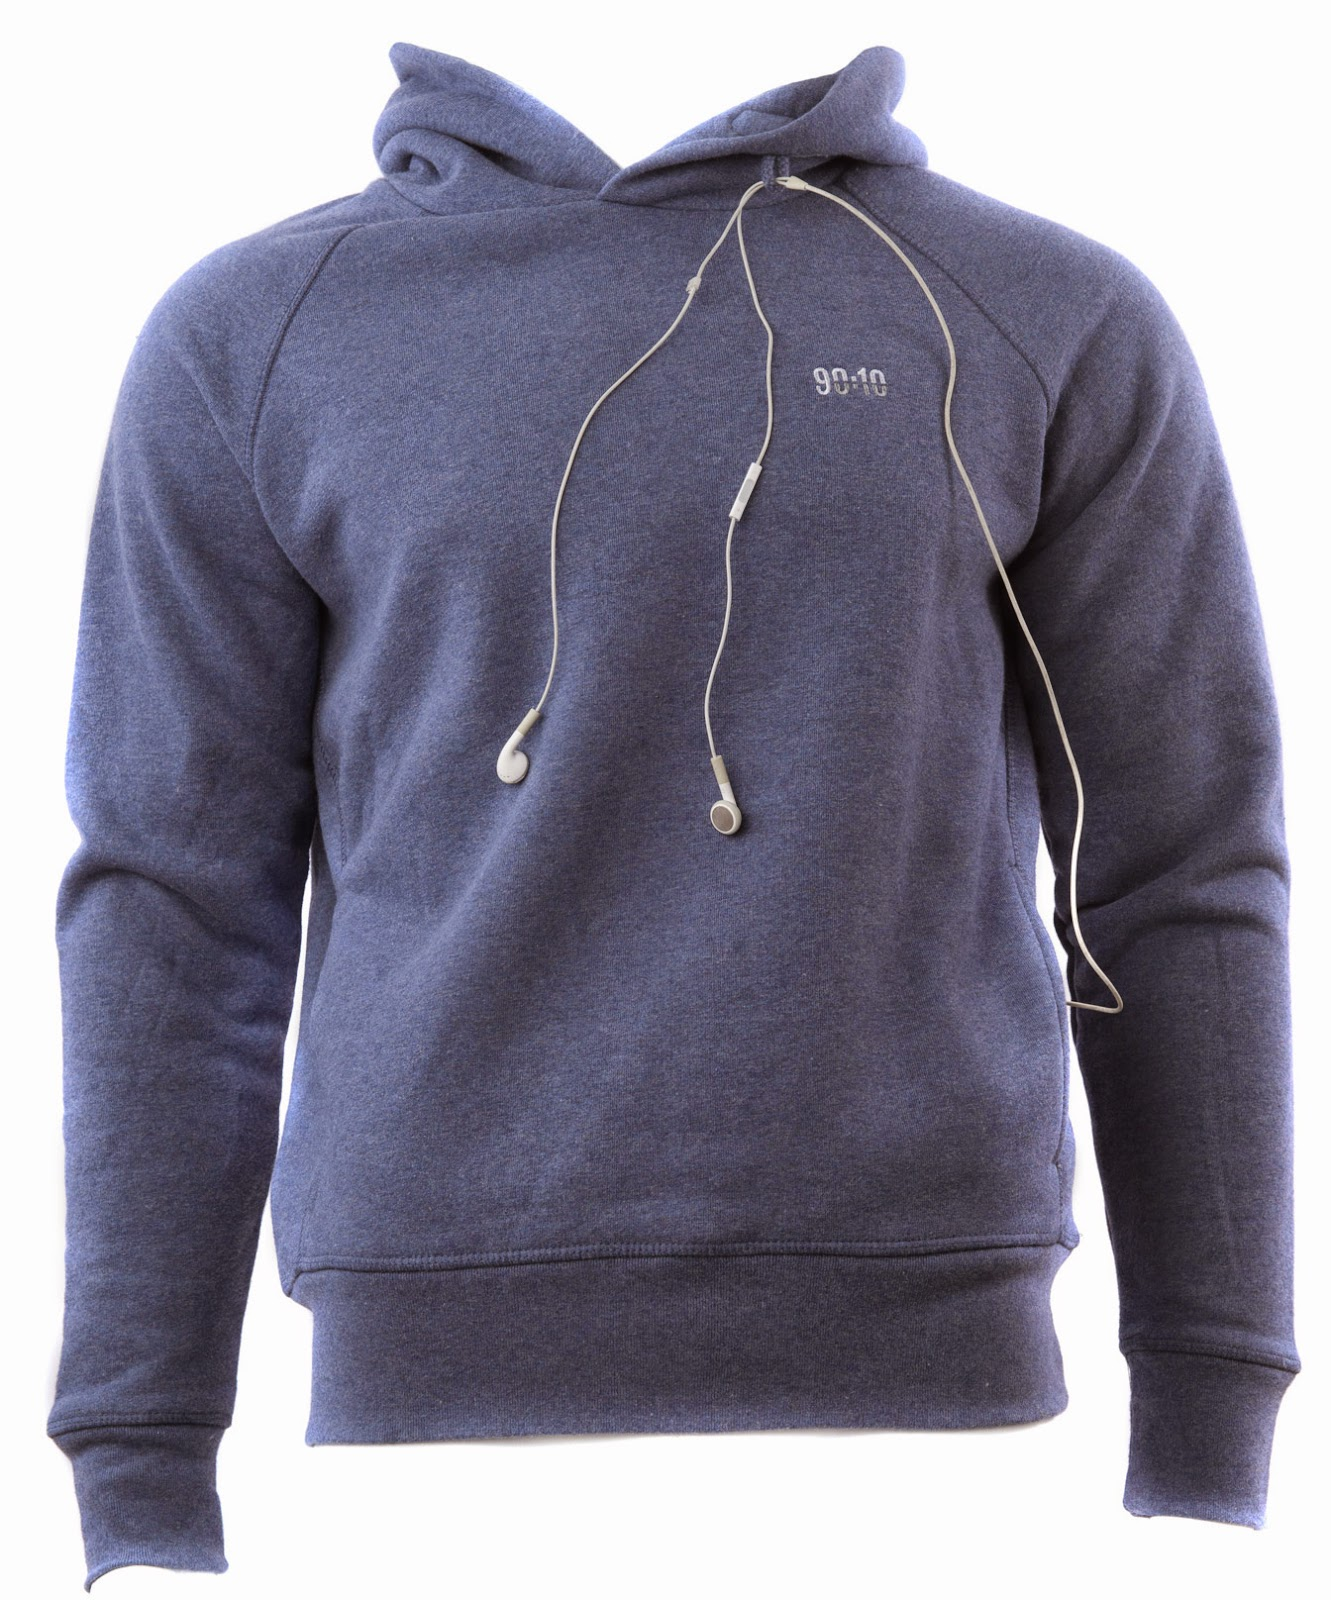 hoodie with headphones